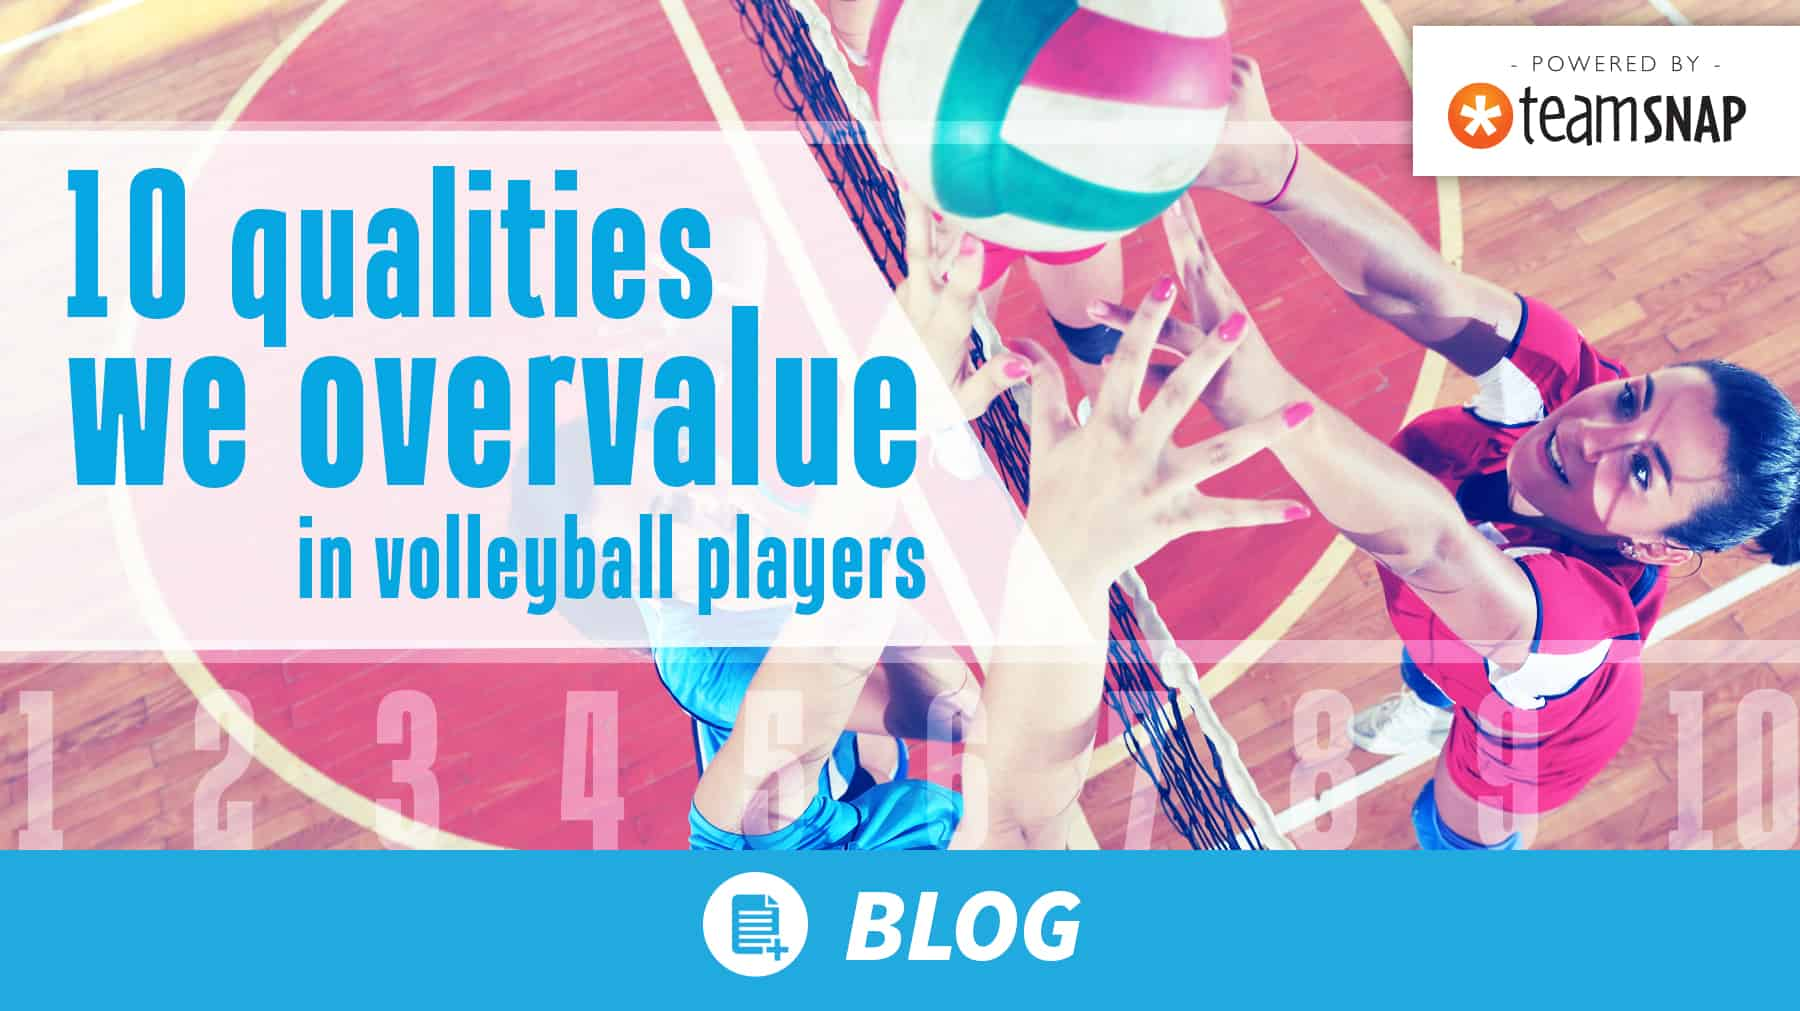 10 qualities we overvalue in volleyball players